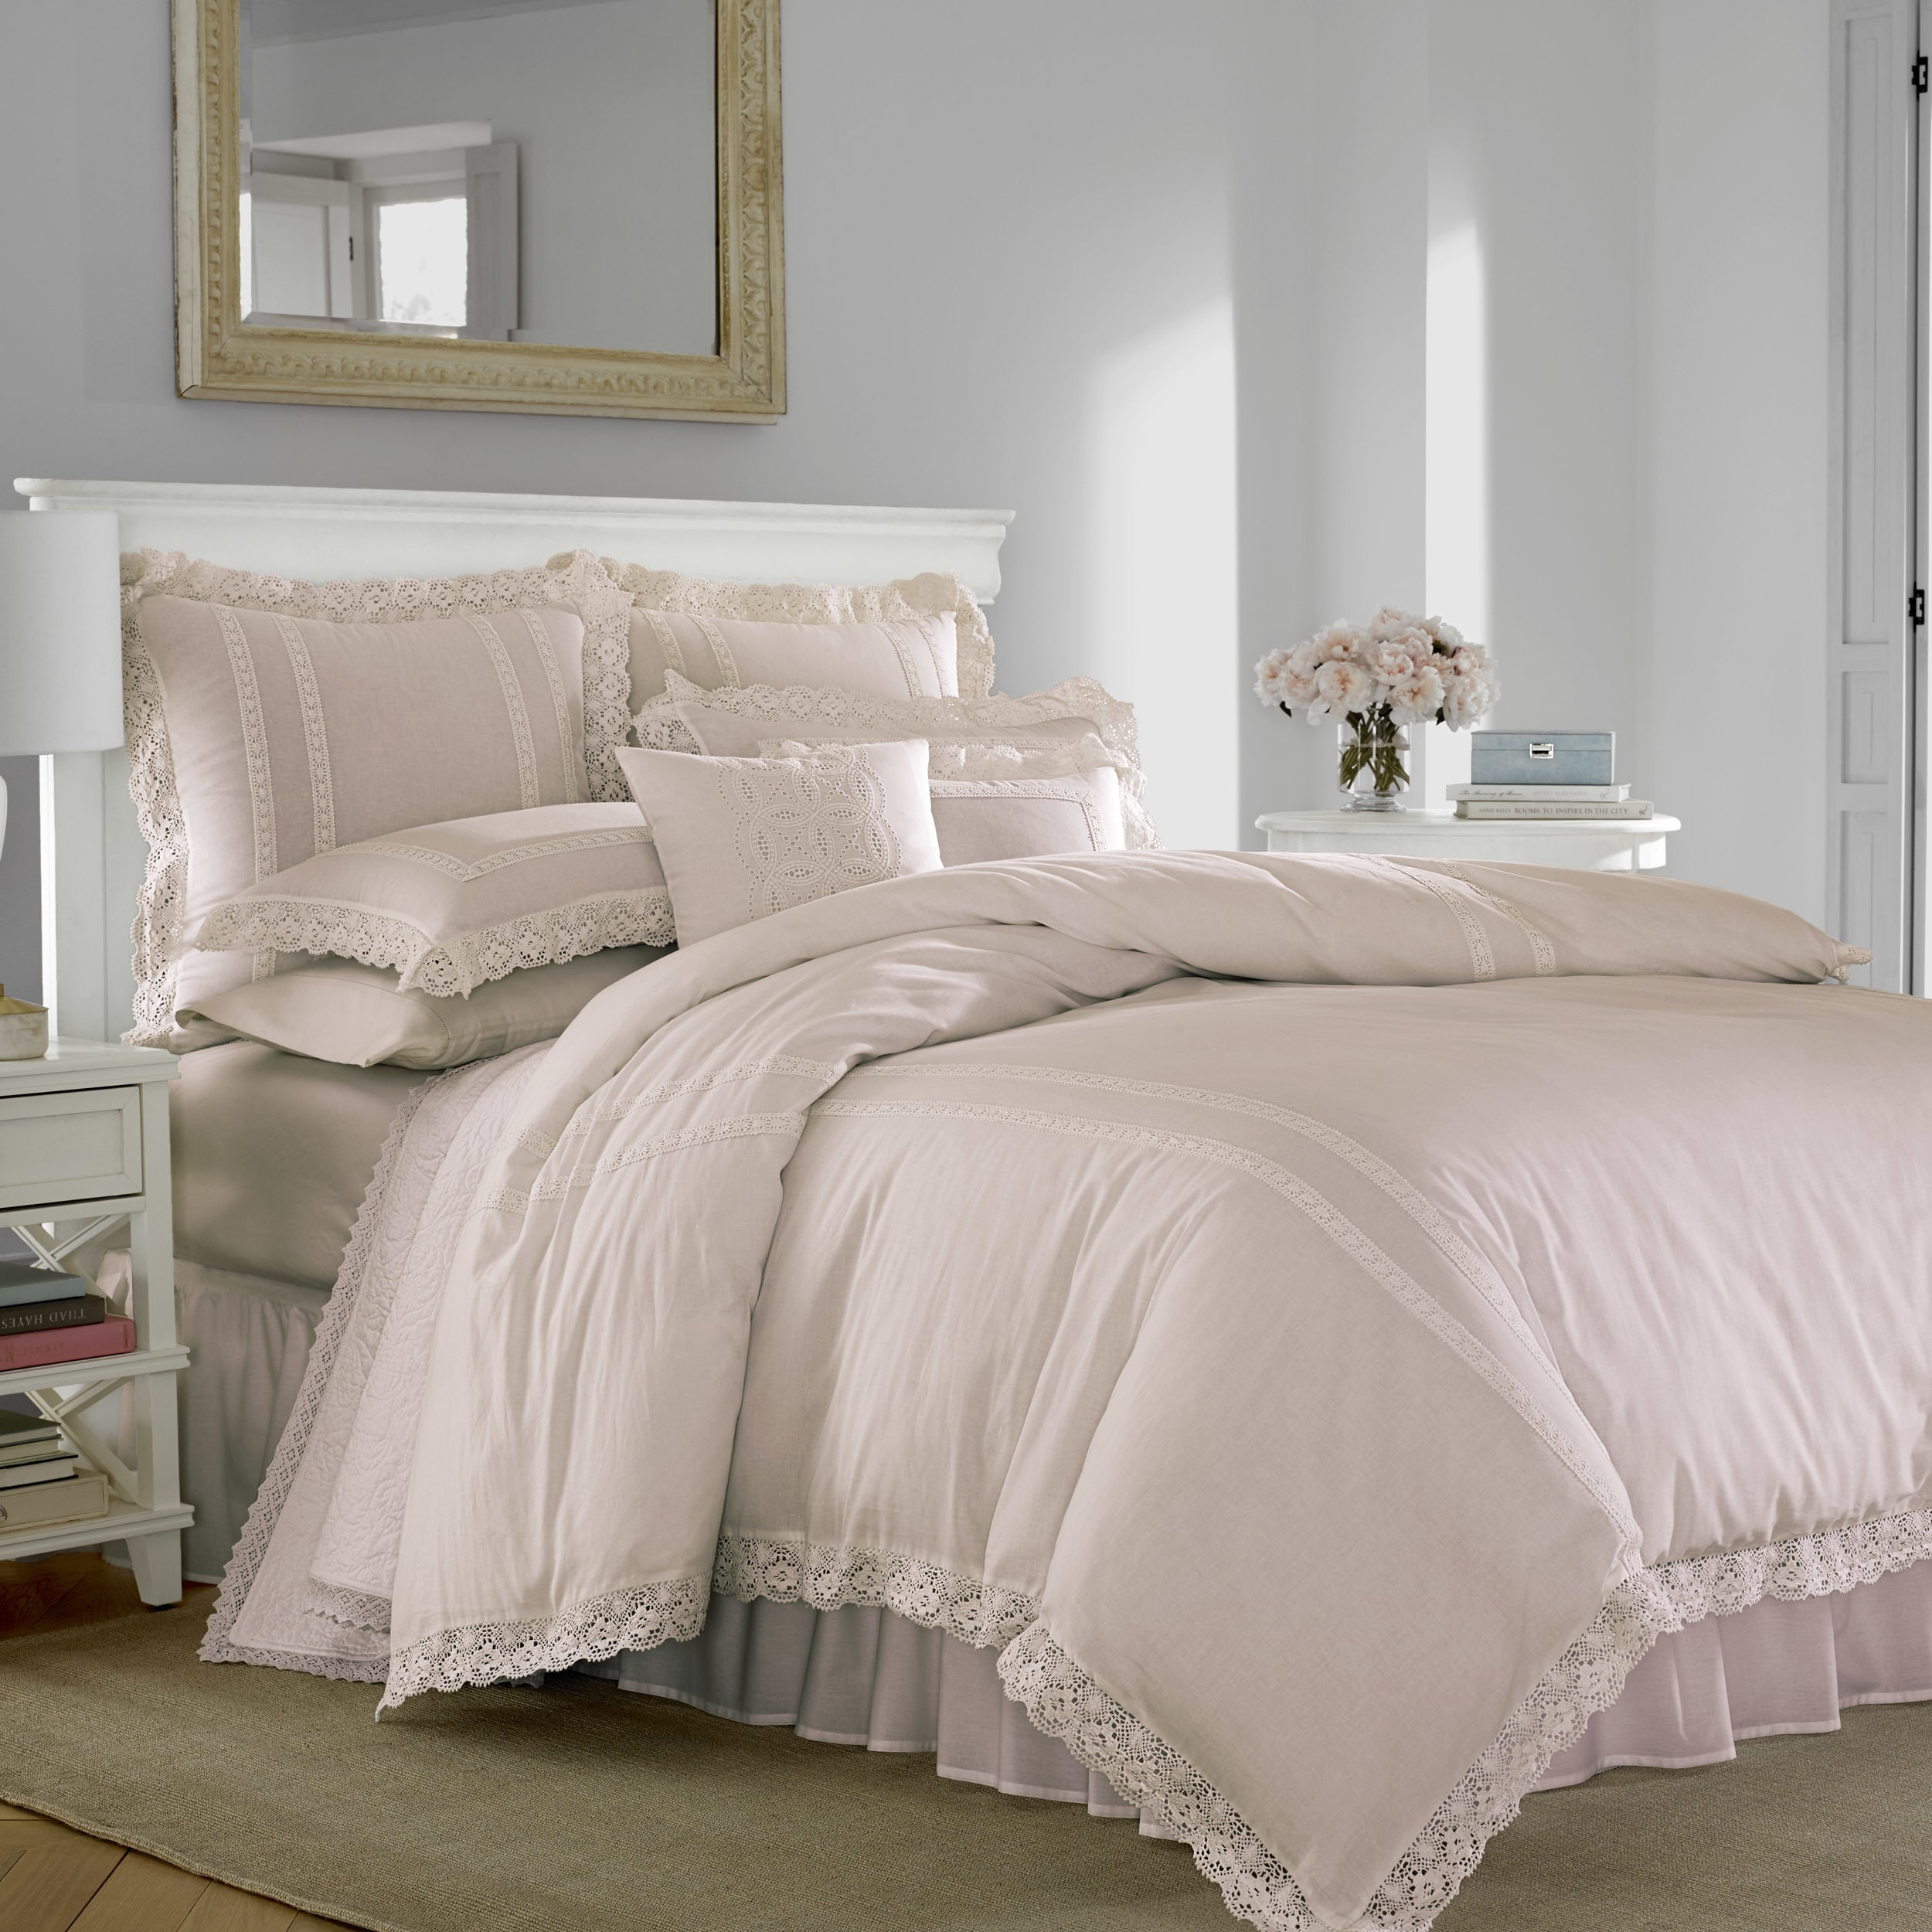 cover duvet exotic pink double grey lansfield set catherine flamingo product bedding reversible